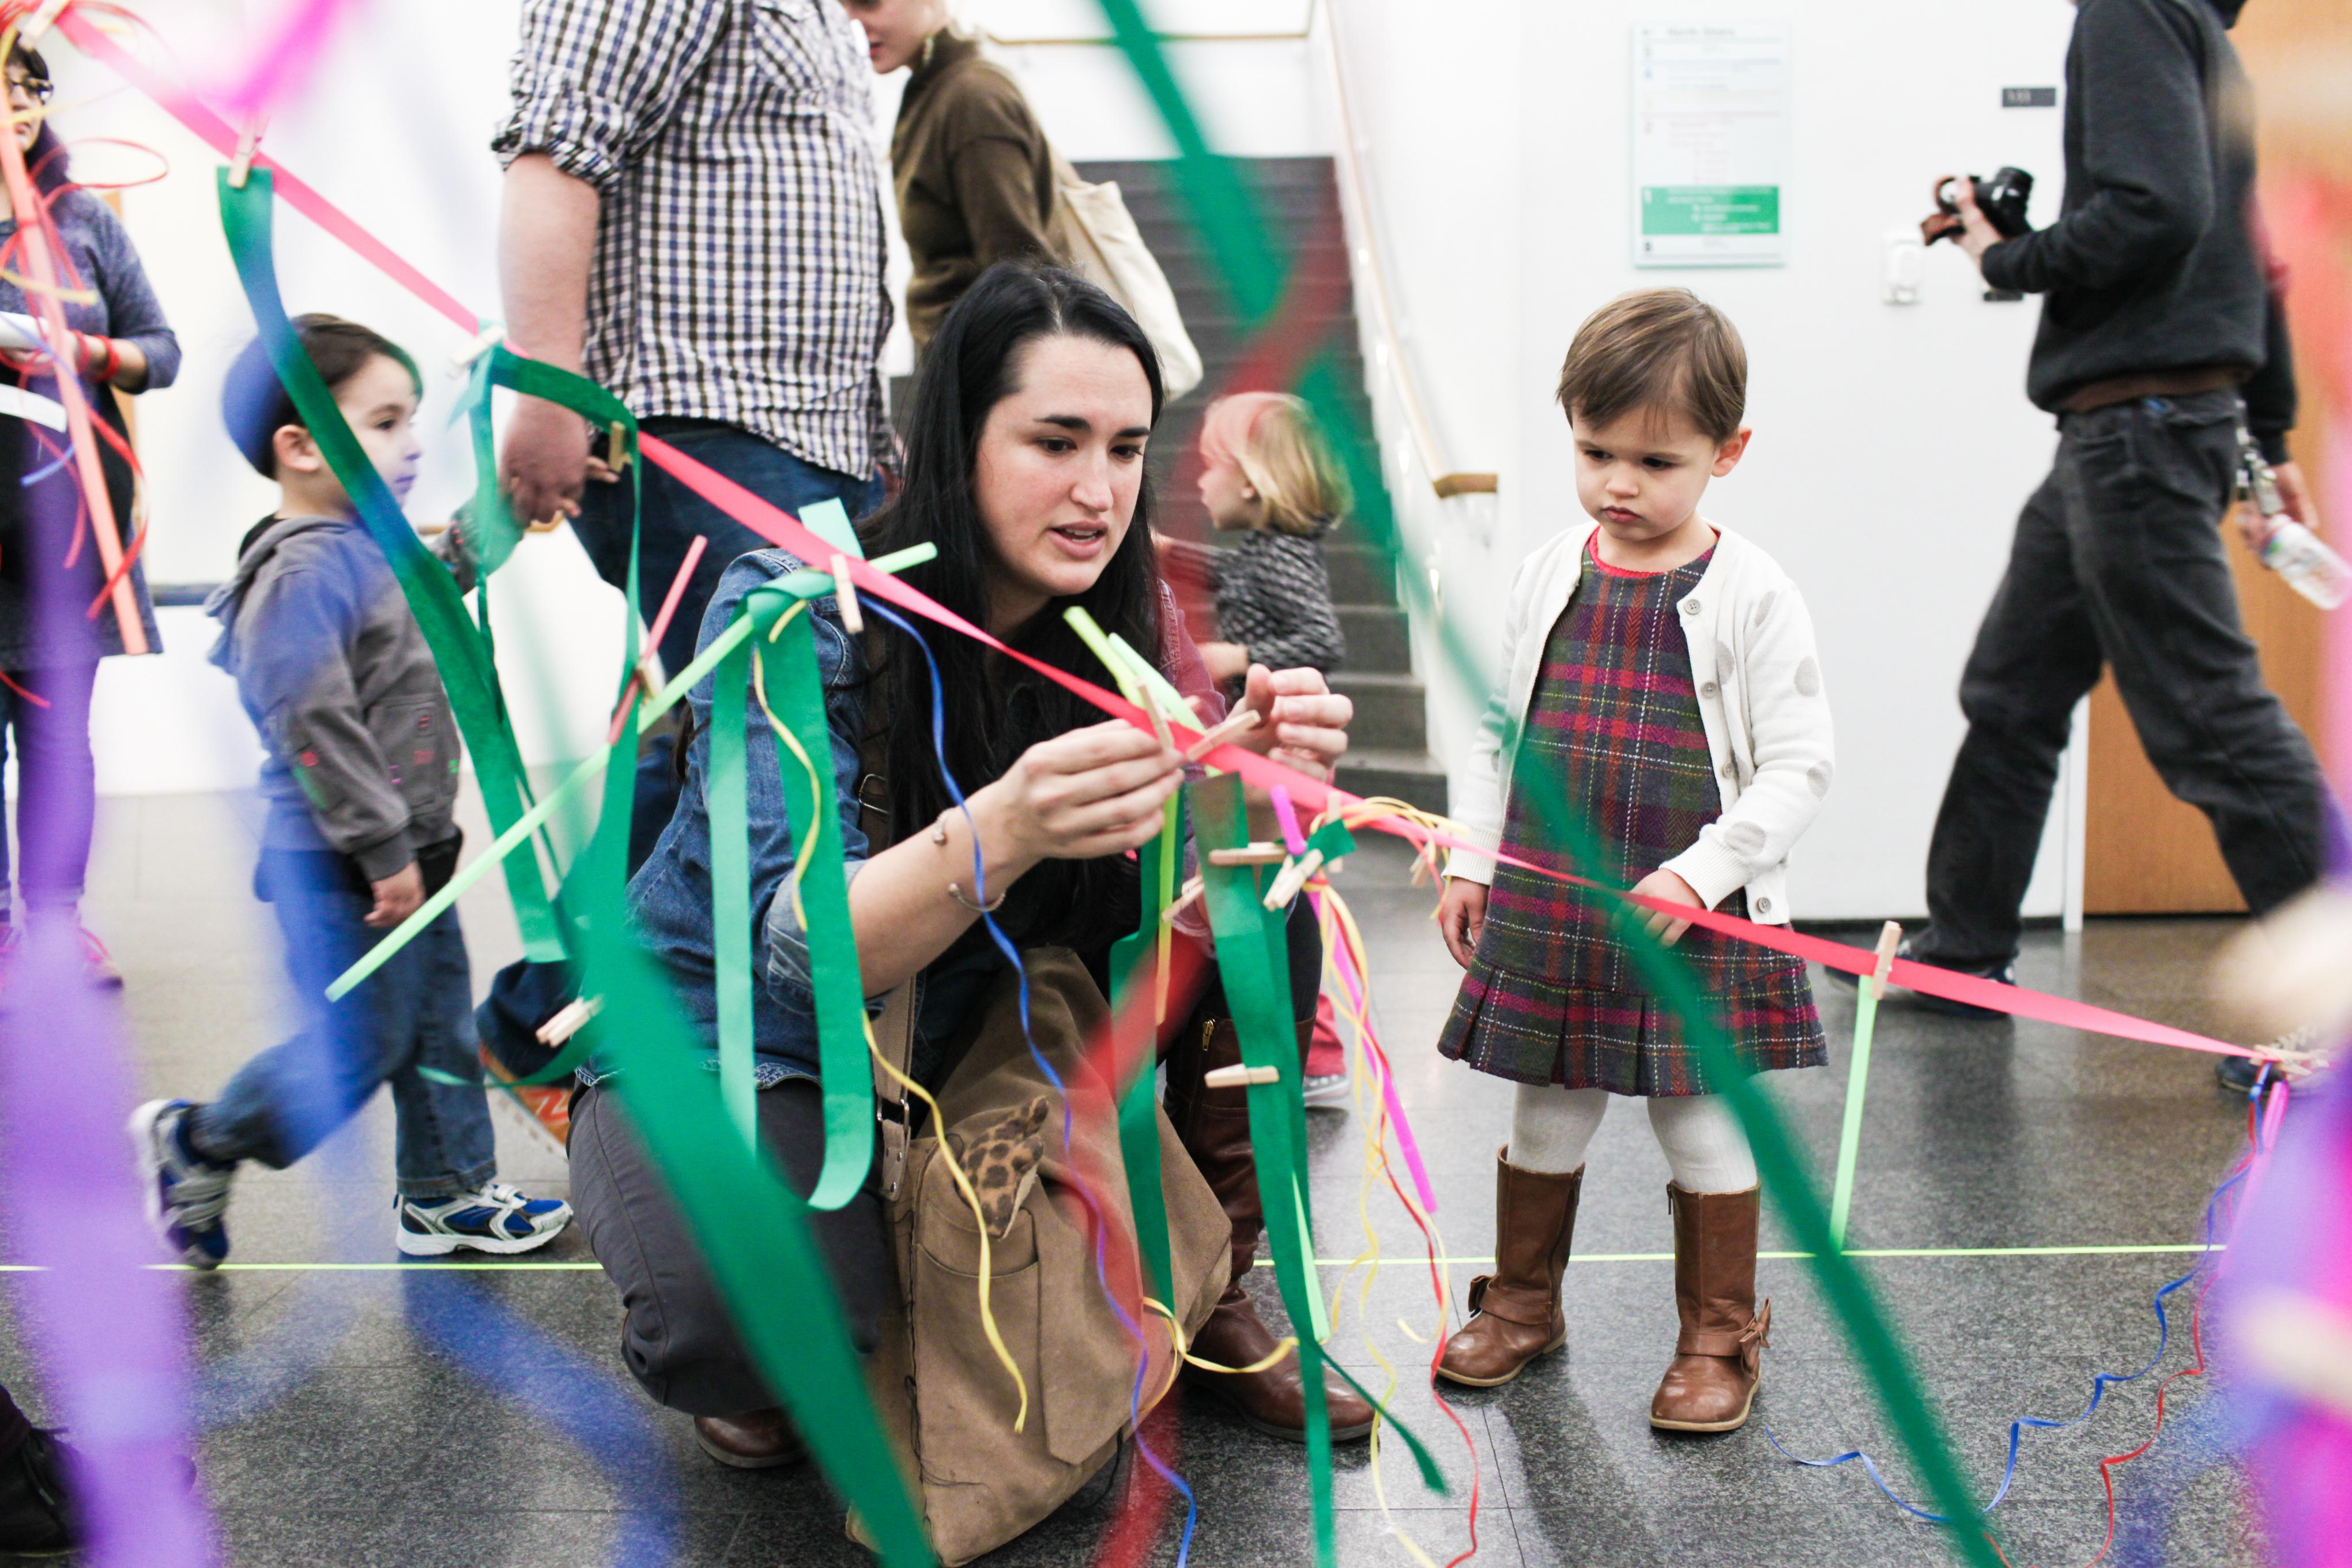 A woman ties a knot of ribbon onto another while a young child watches.